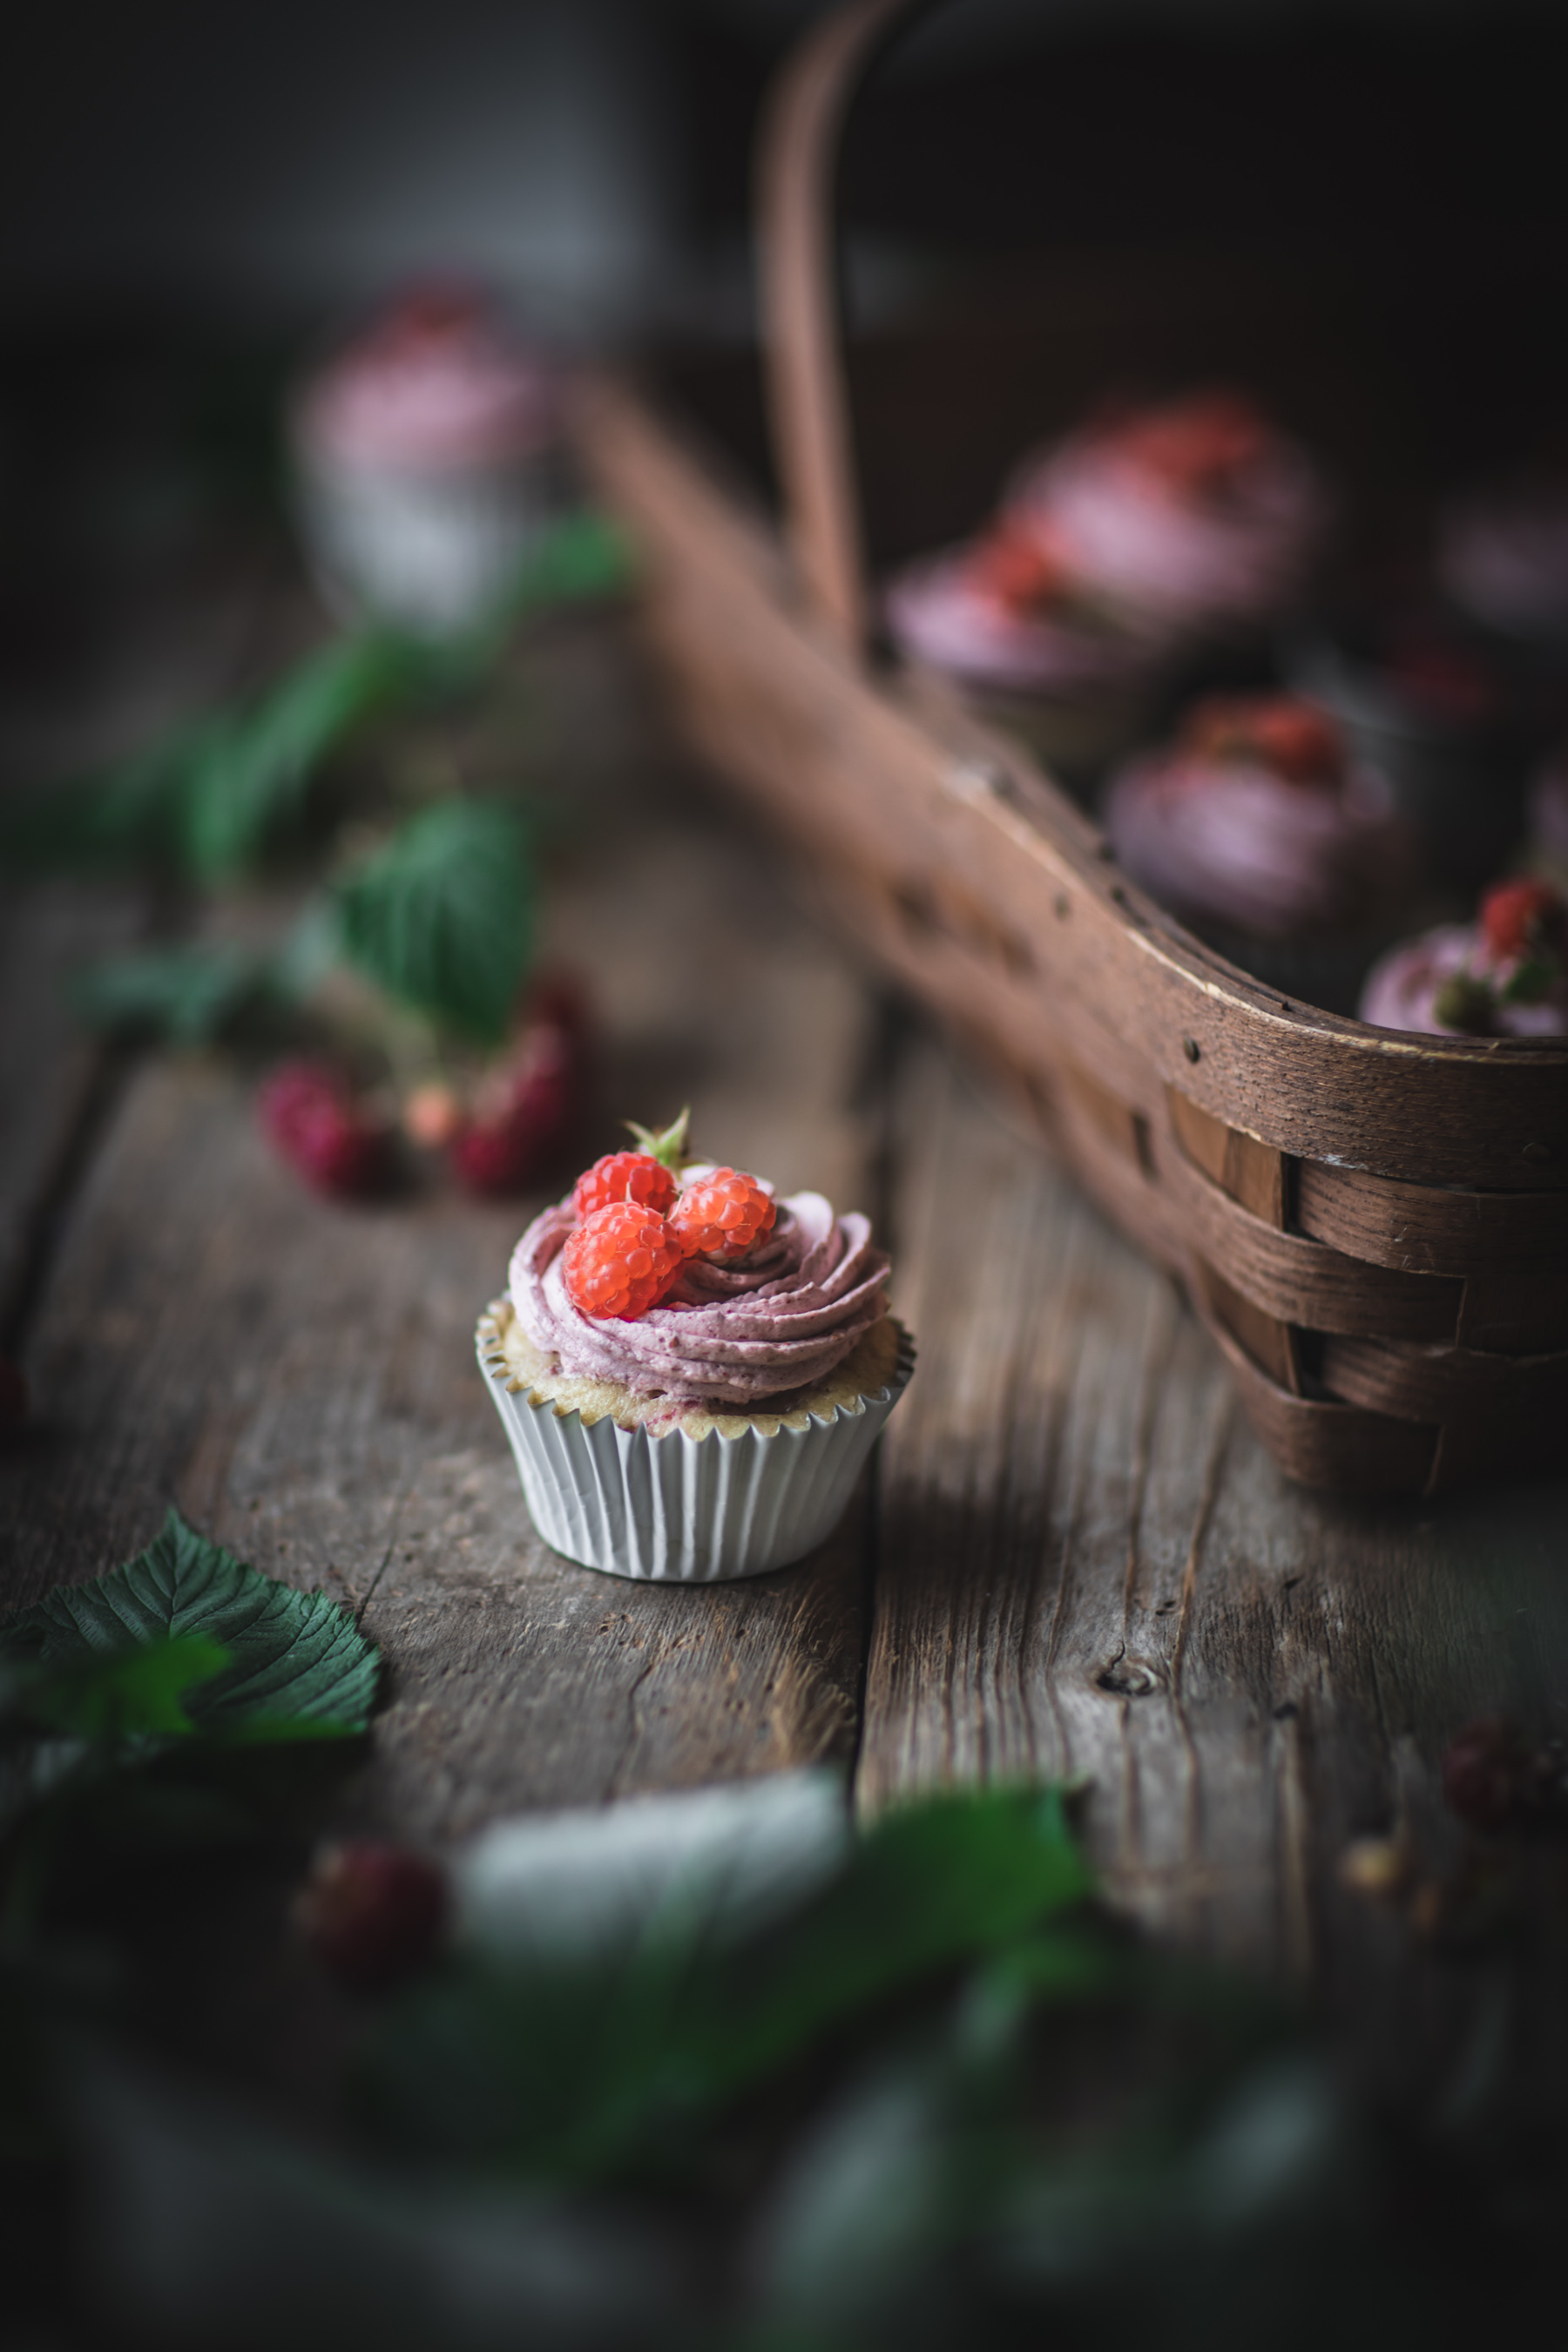 Raspberry Cupcakes with Cream Cheese Buttercream